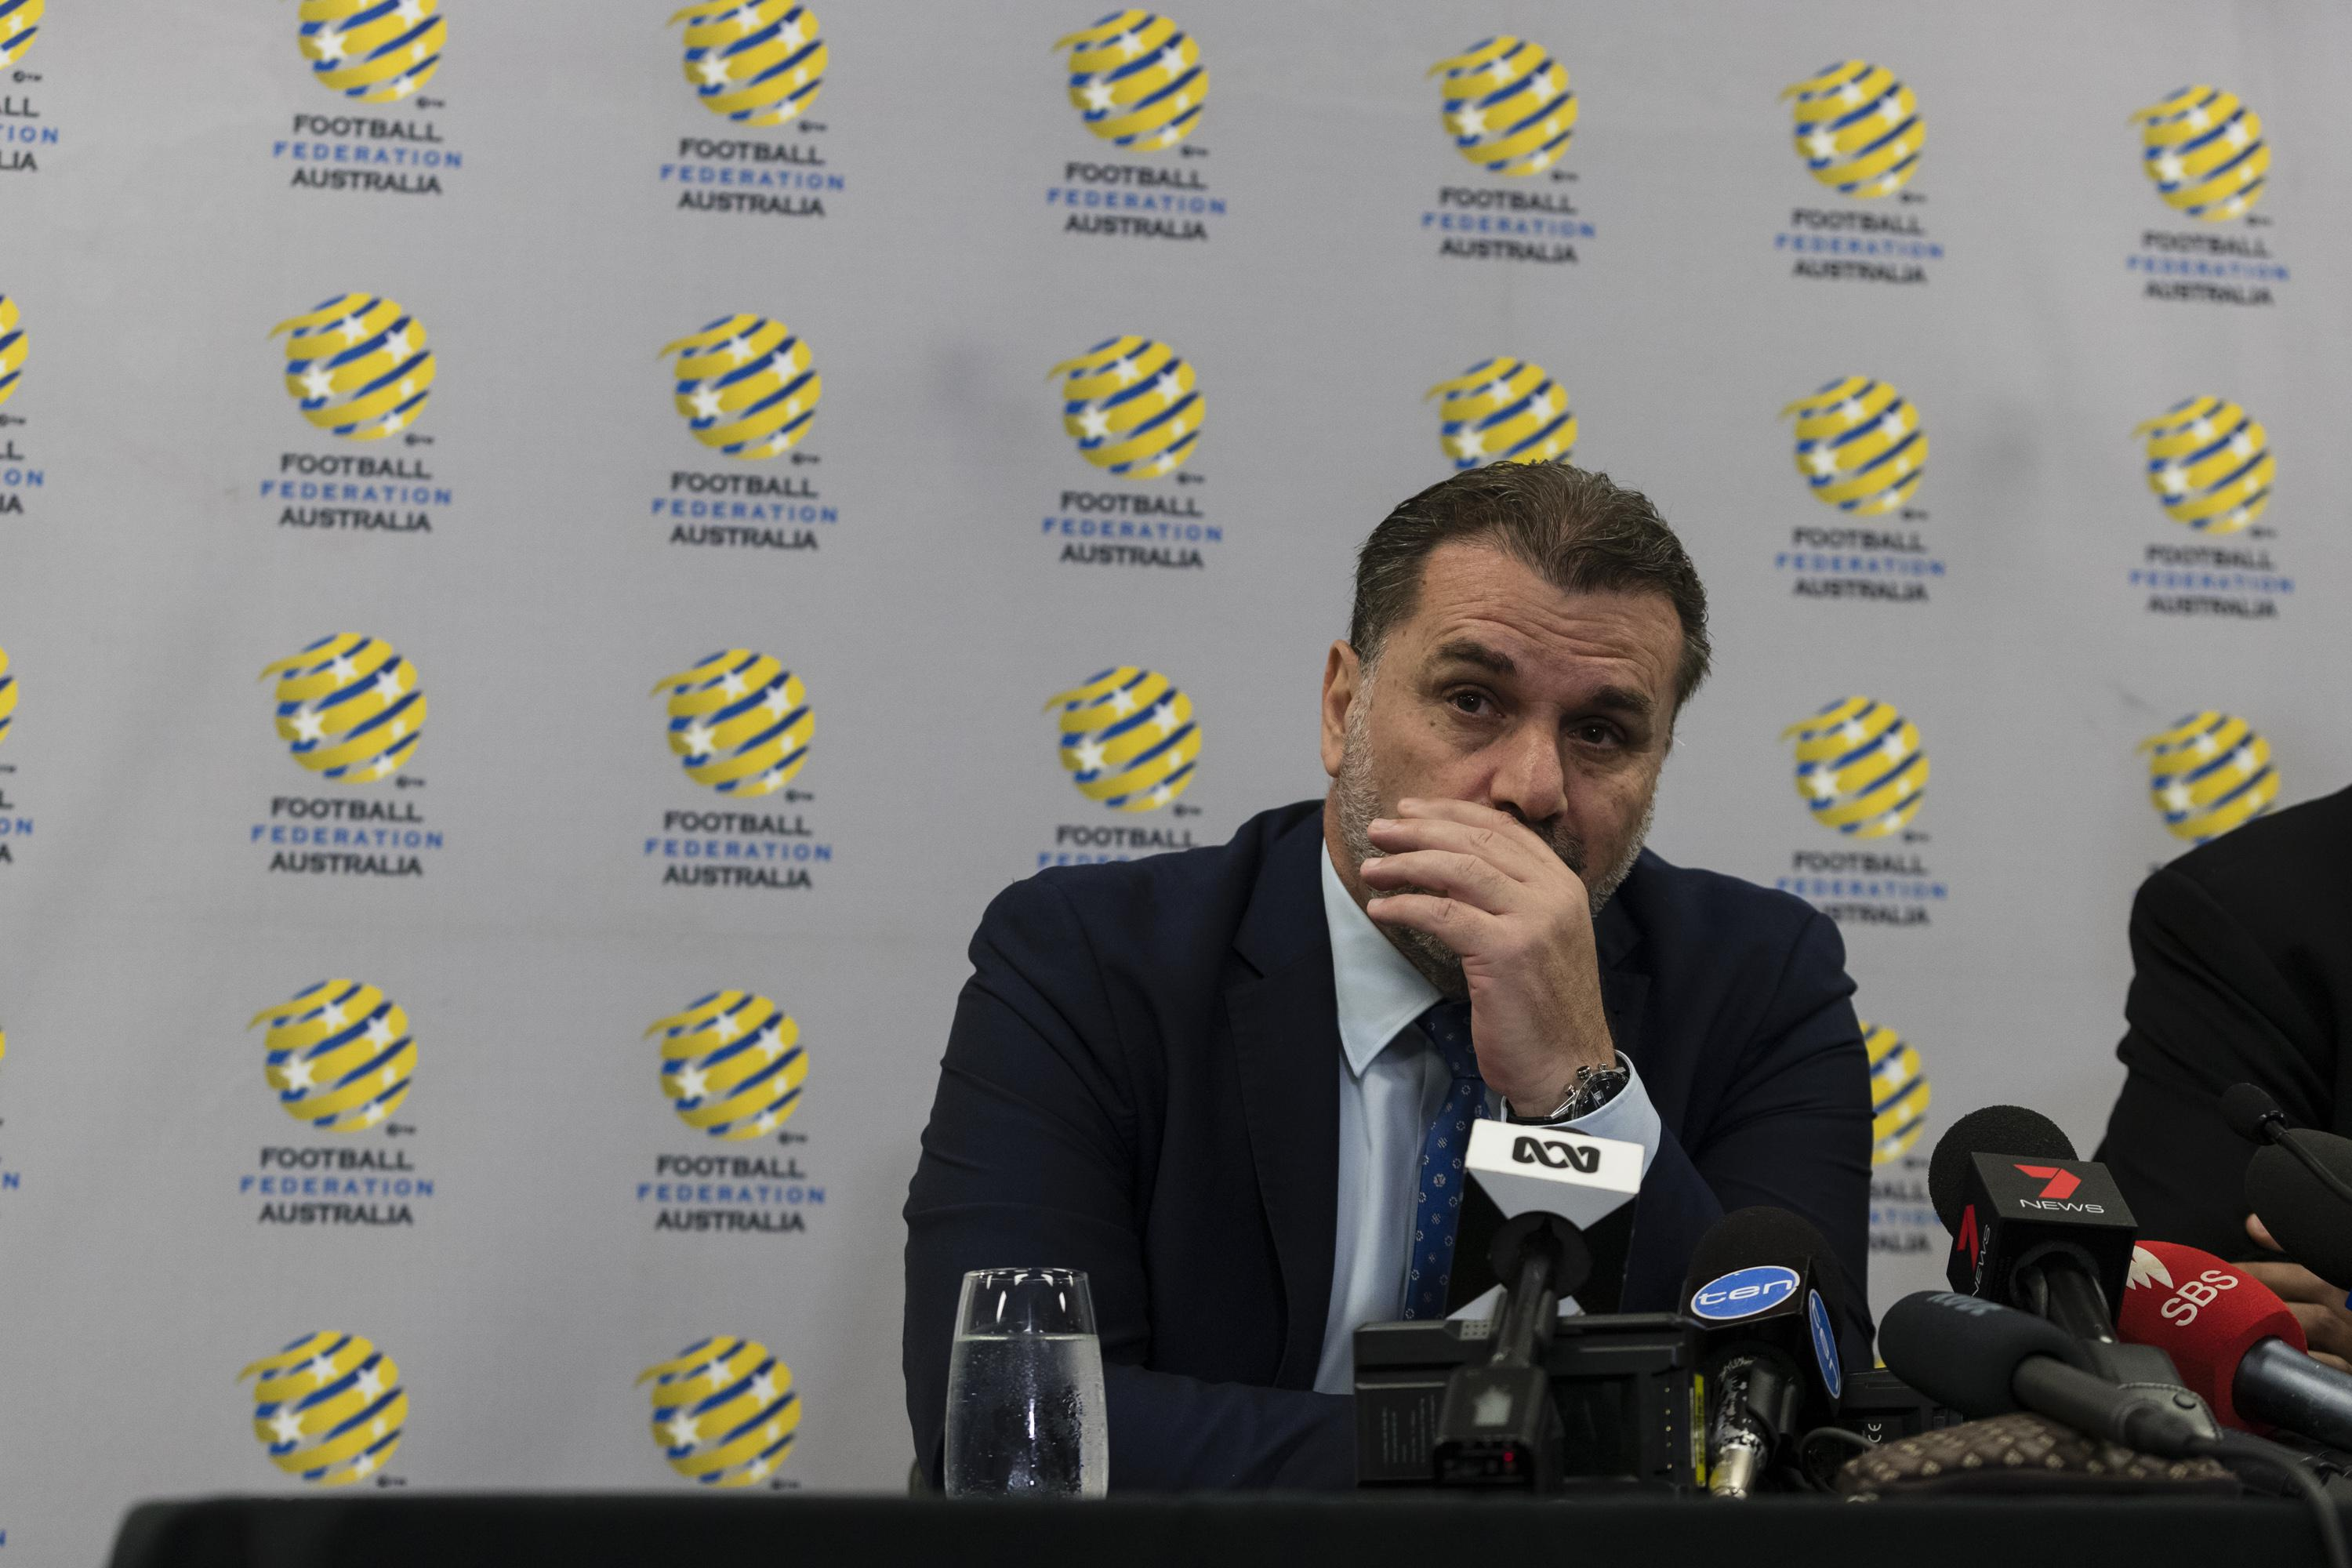 Austrlia are currently manager-less following Postecoglou's shock resignation